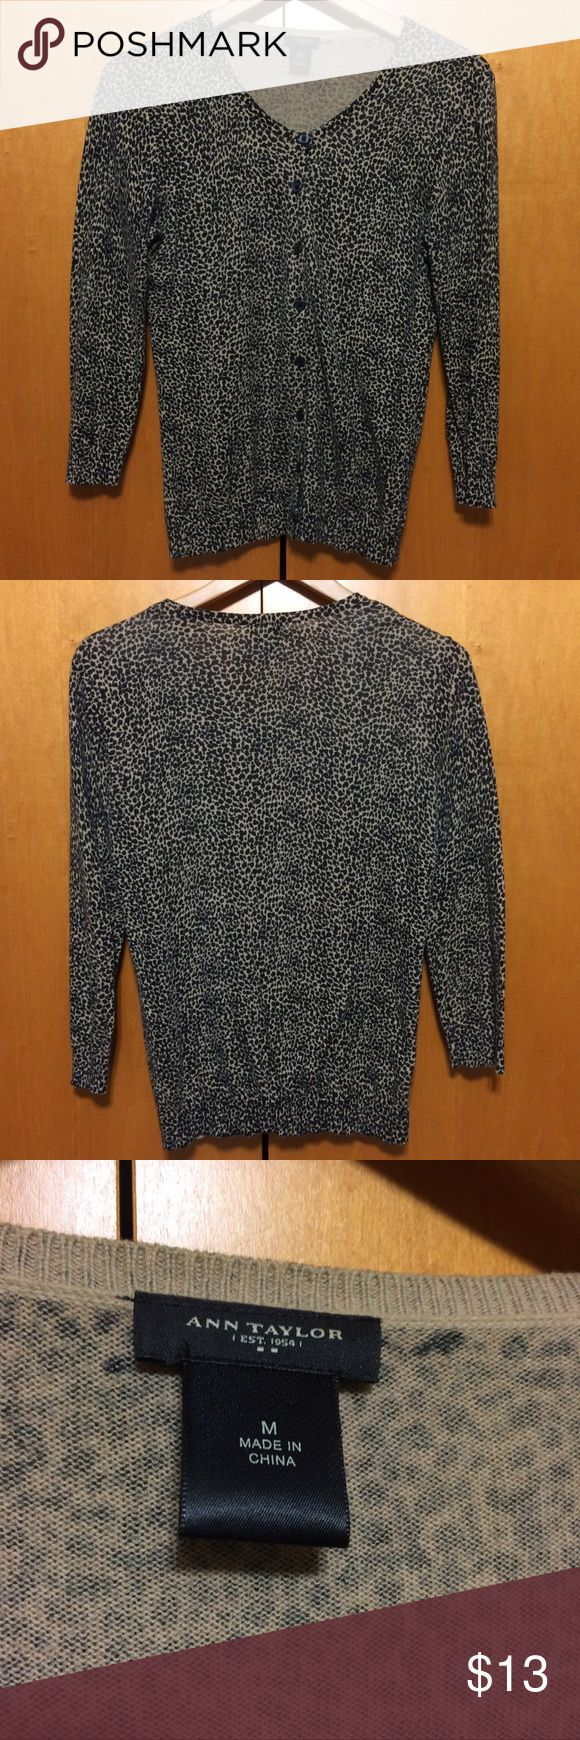 Ann Taylor Animal Print Cardigan Cute fitted cardigan with 3/4 sleeves. Lightweight. Cheetah/leopard print. Round neck. Buttons up the front. No flaws. Ann Taylor Tops